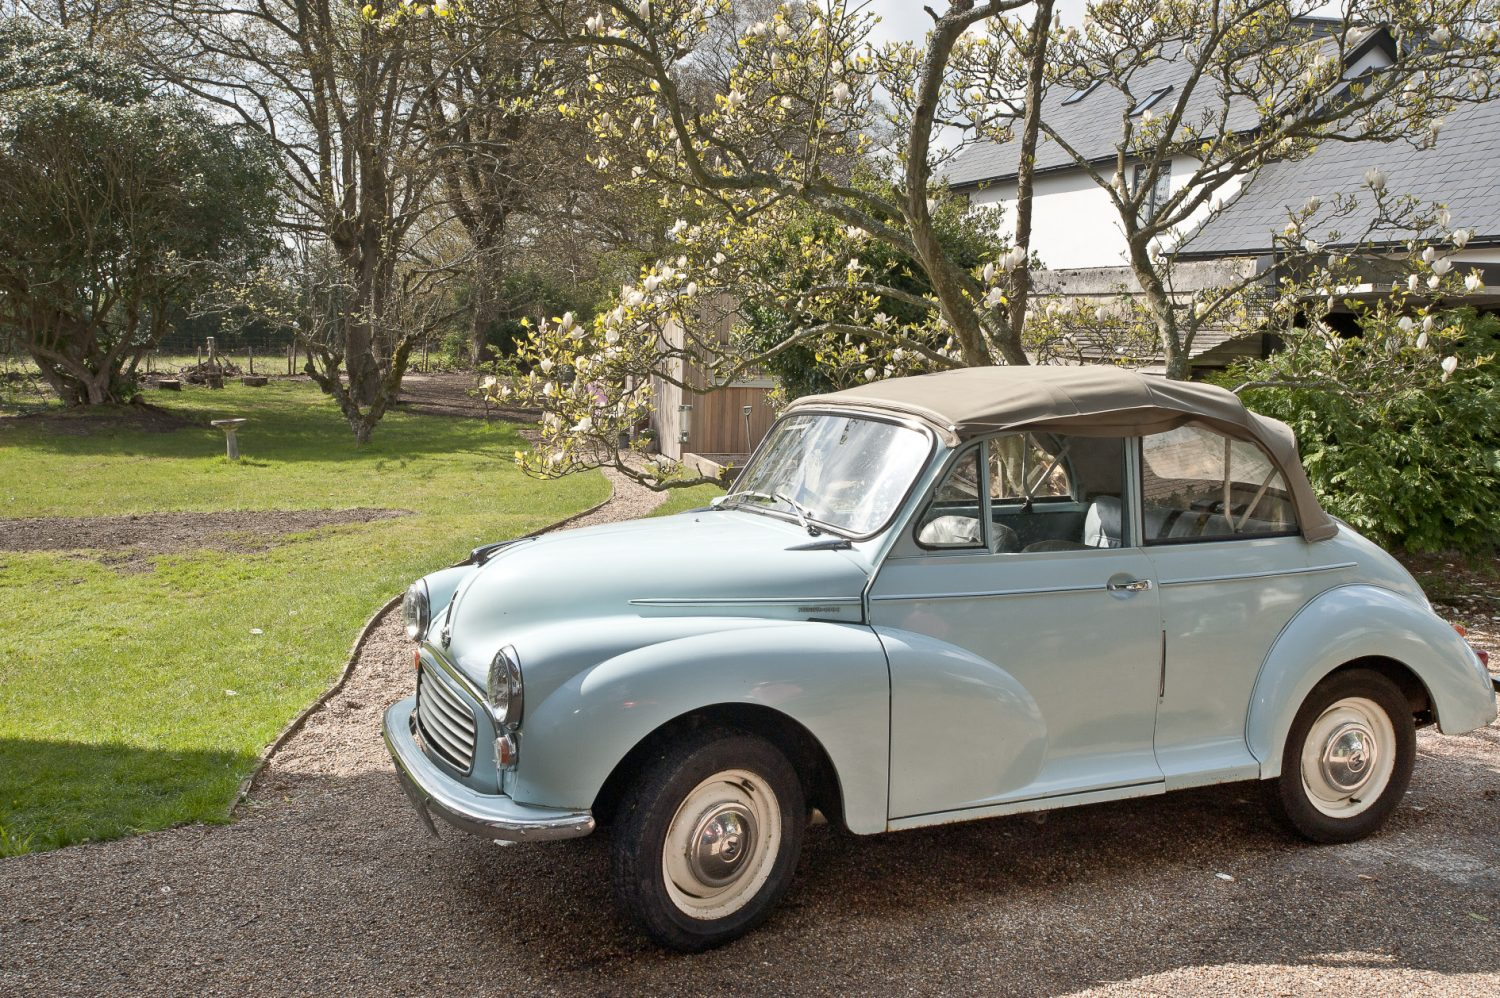 A convertible Morris Minor, inherited by Alice when a friend moved abroad, is parked proudly outside the house